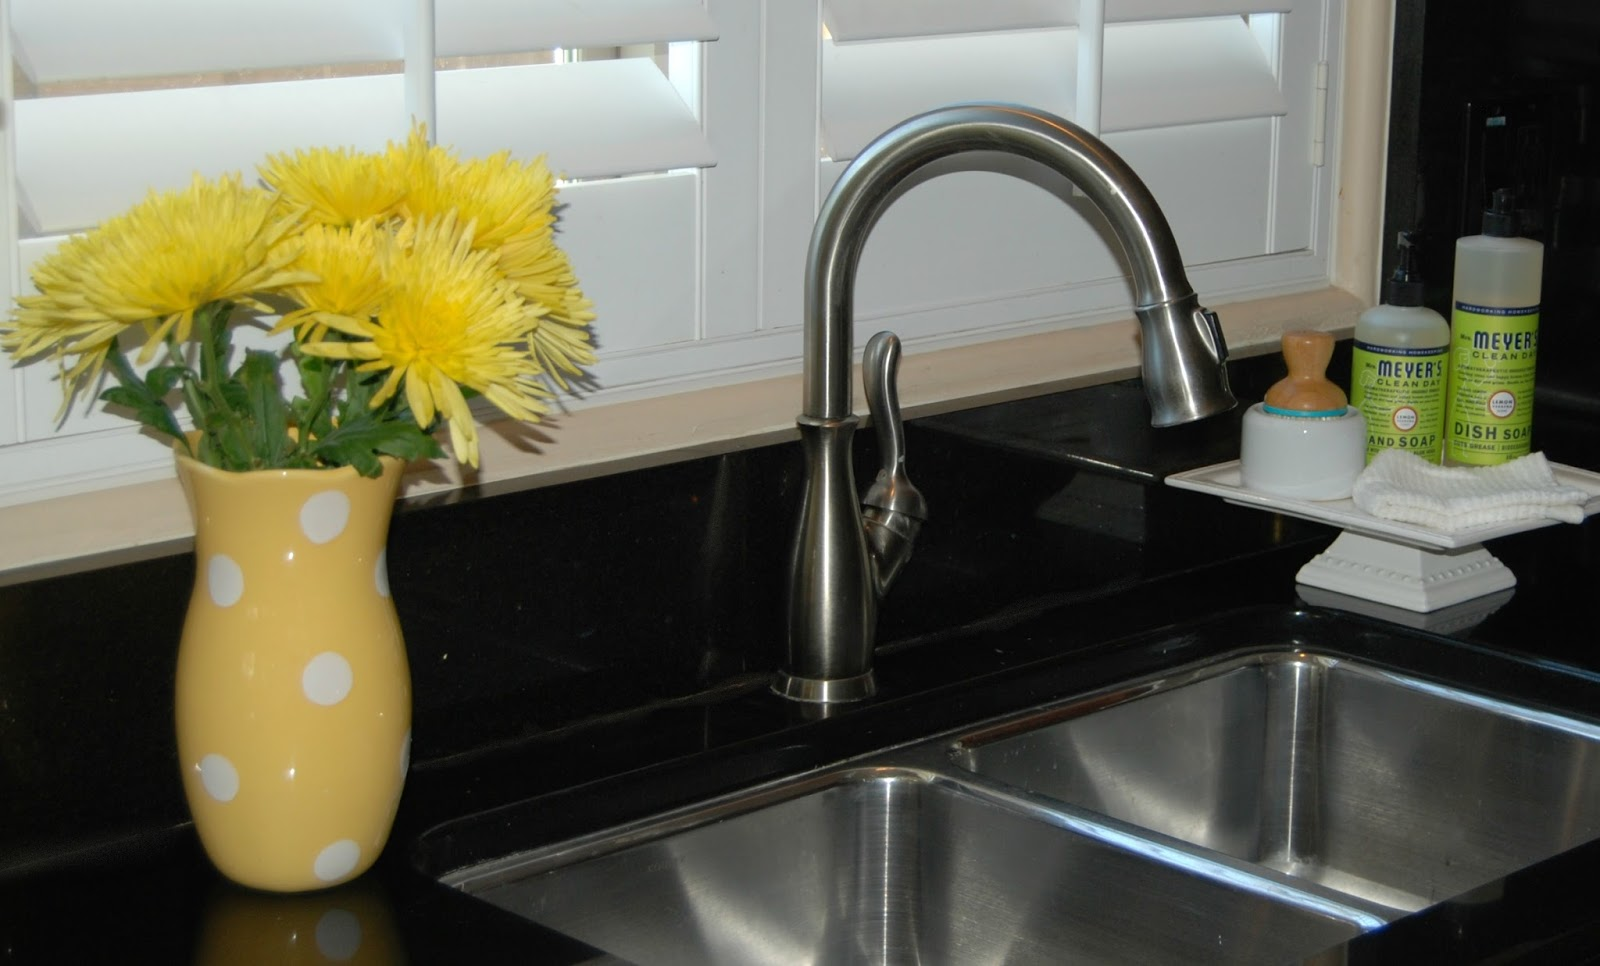 10 Steps for Organizing Under Sink Kitchen Cabinets - Sweet Shoppe ...